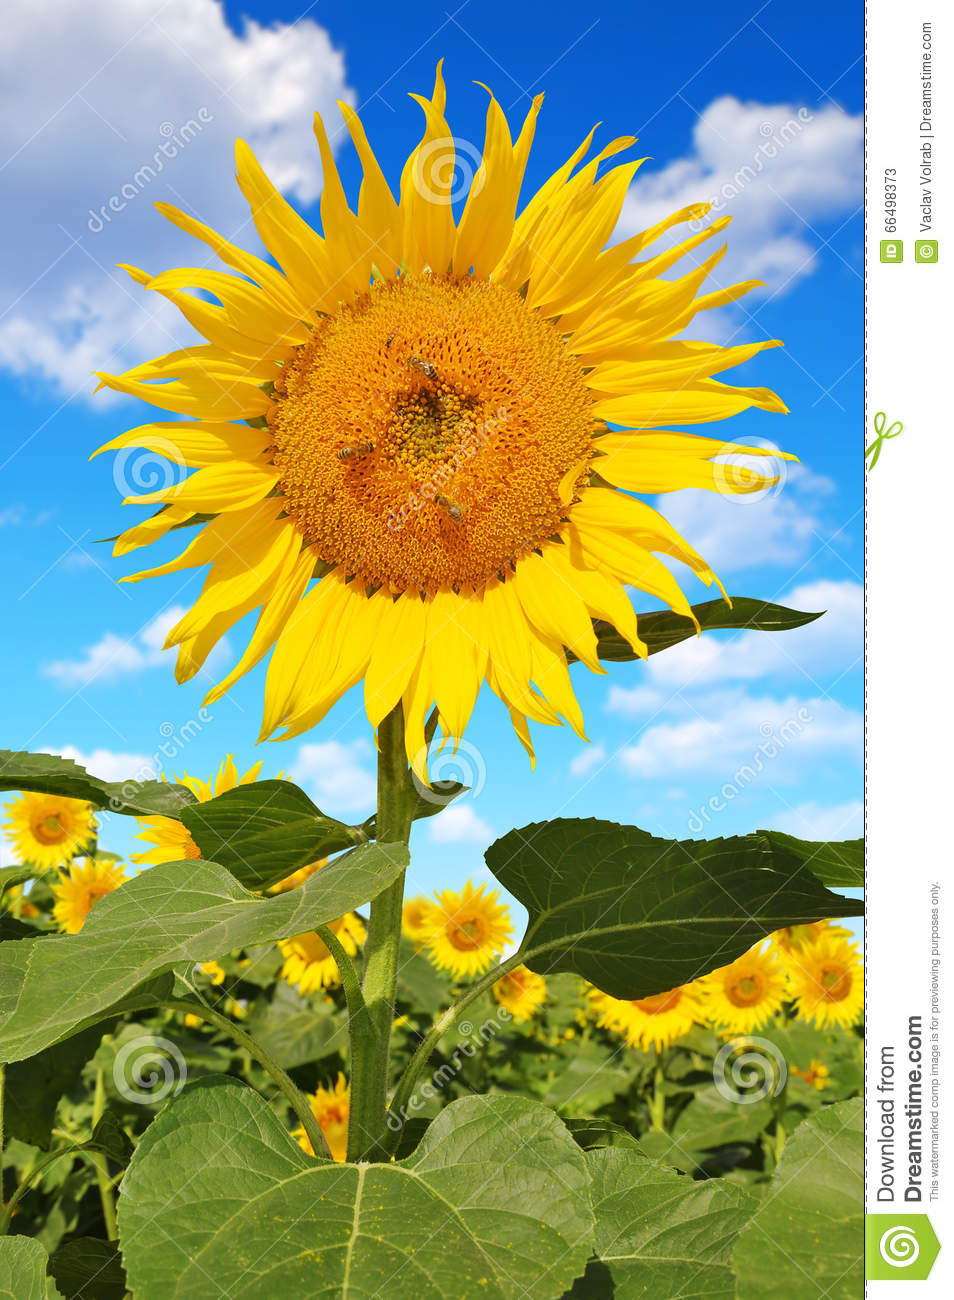 sunflower field picture blooming - photo #37